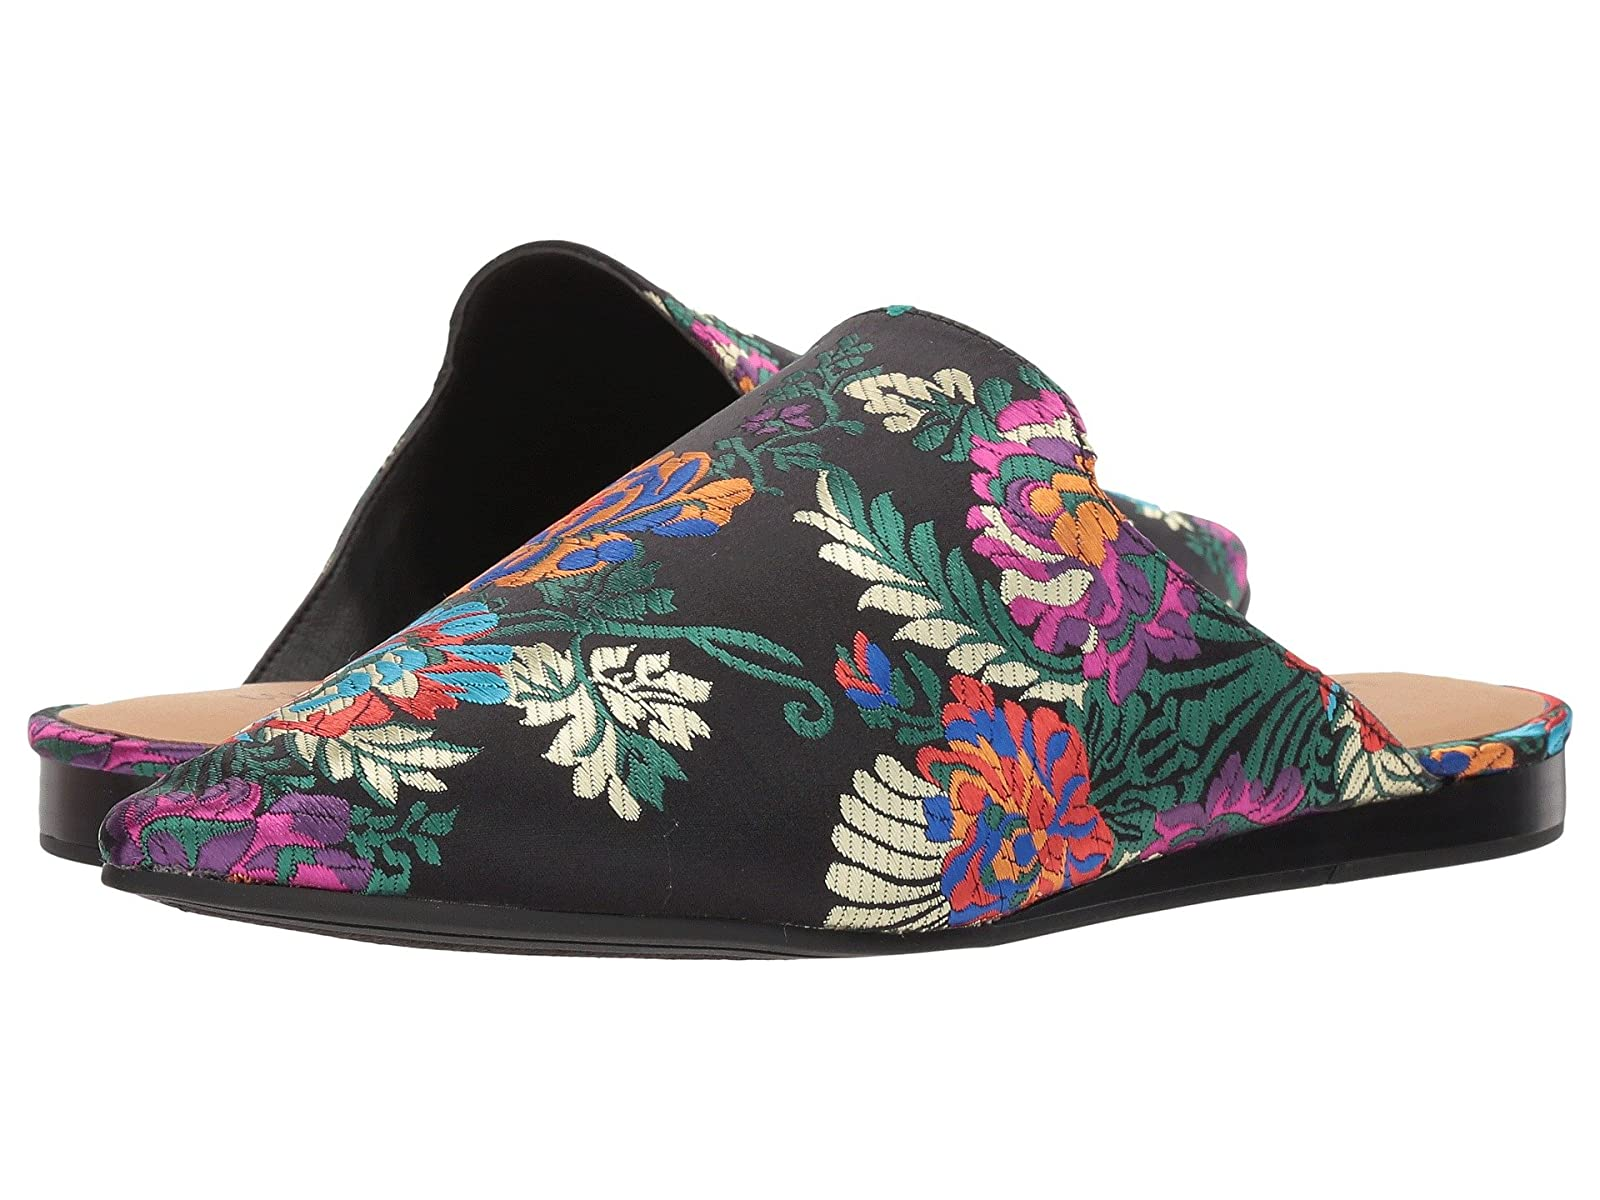 Lucky Brand BlythhCheap and distinctive eye-catching shoes